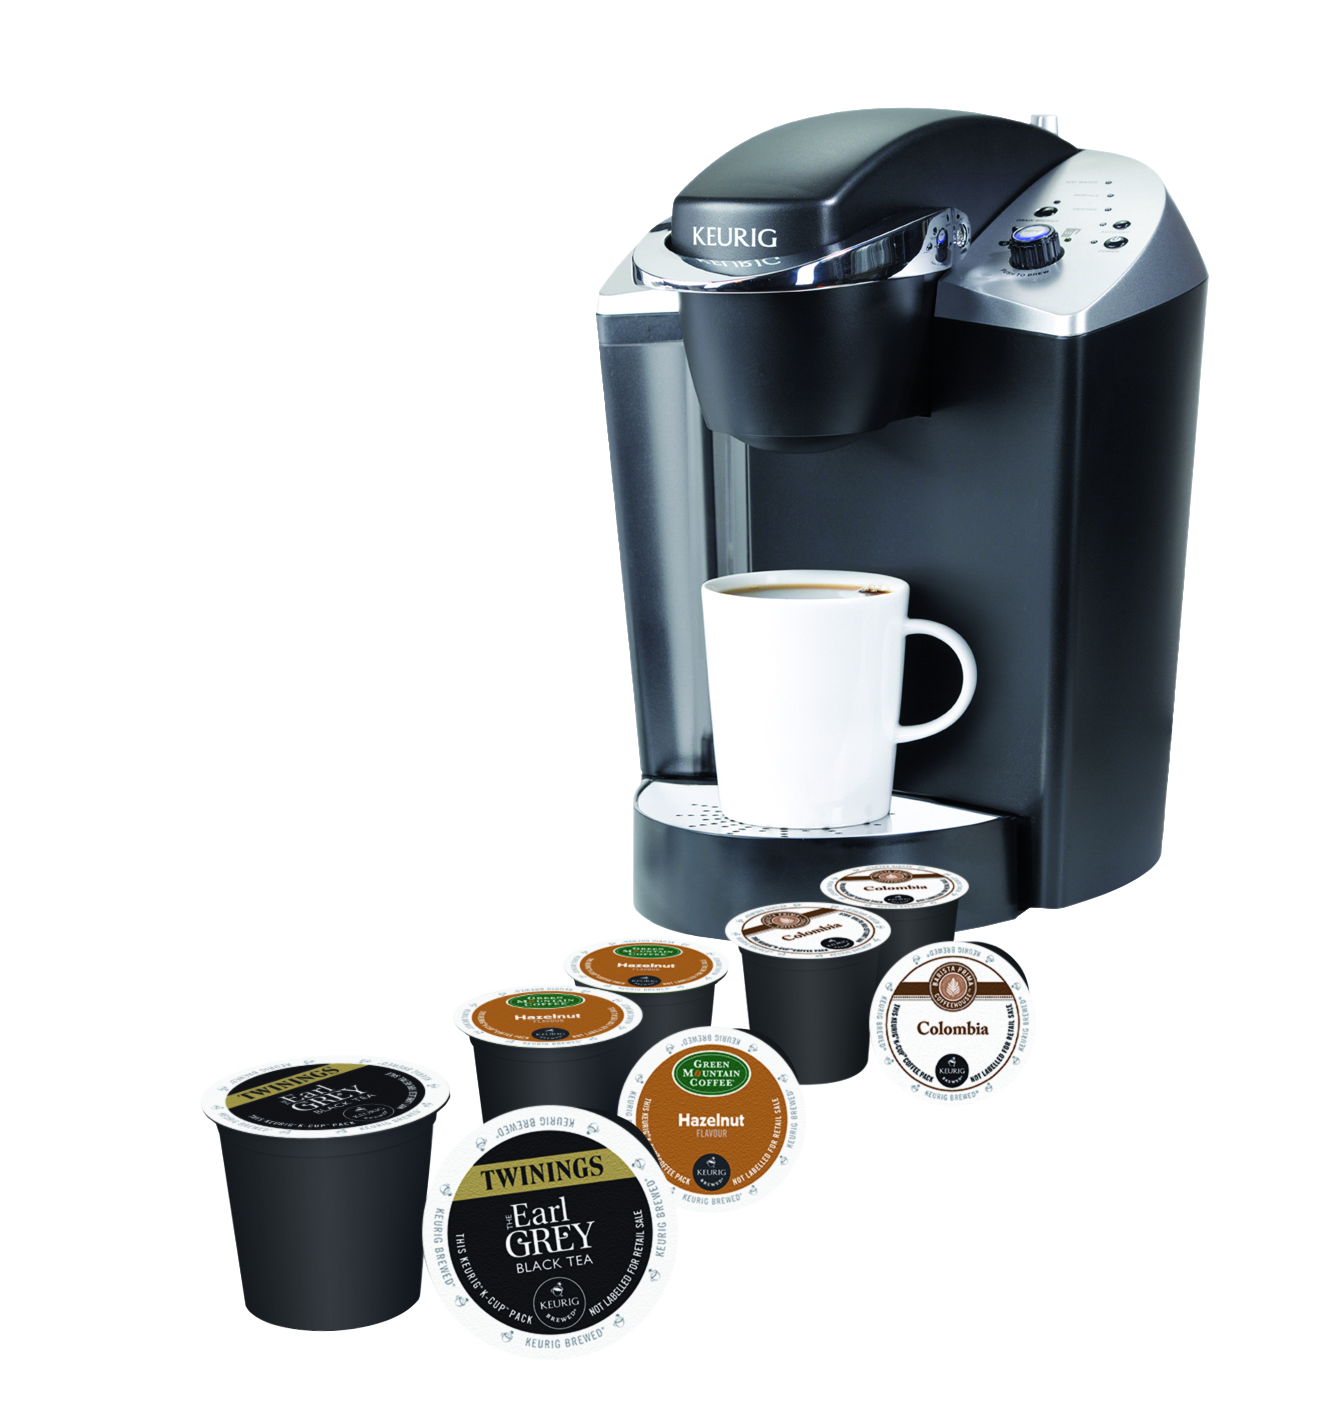 Keurig K140 Troubleshooting The Coffee Delivery Company